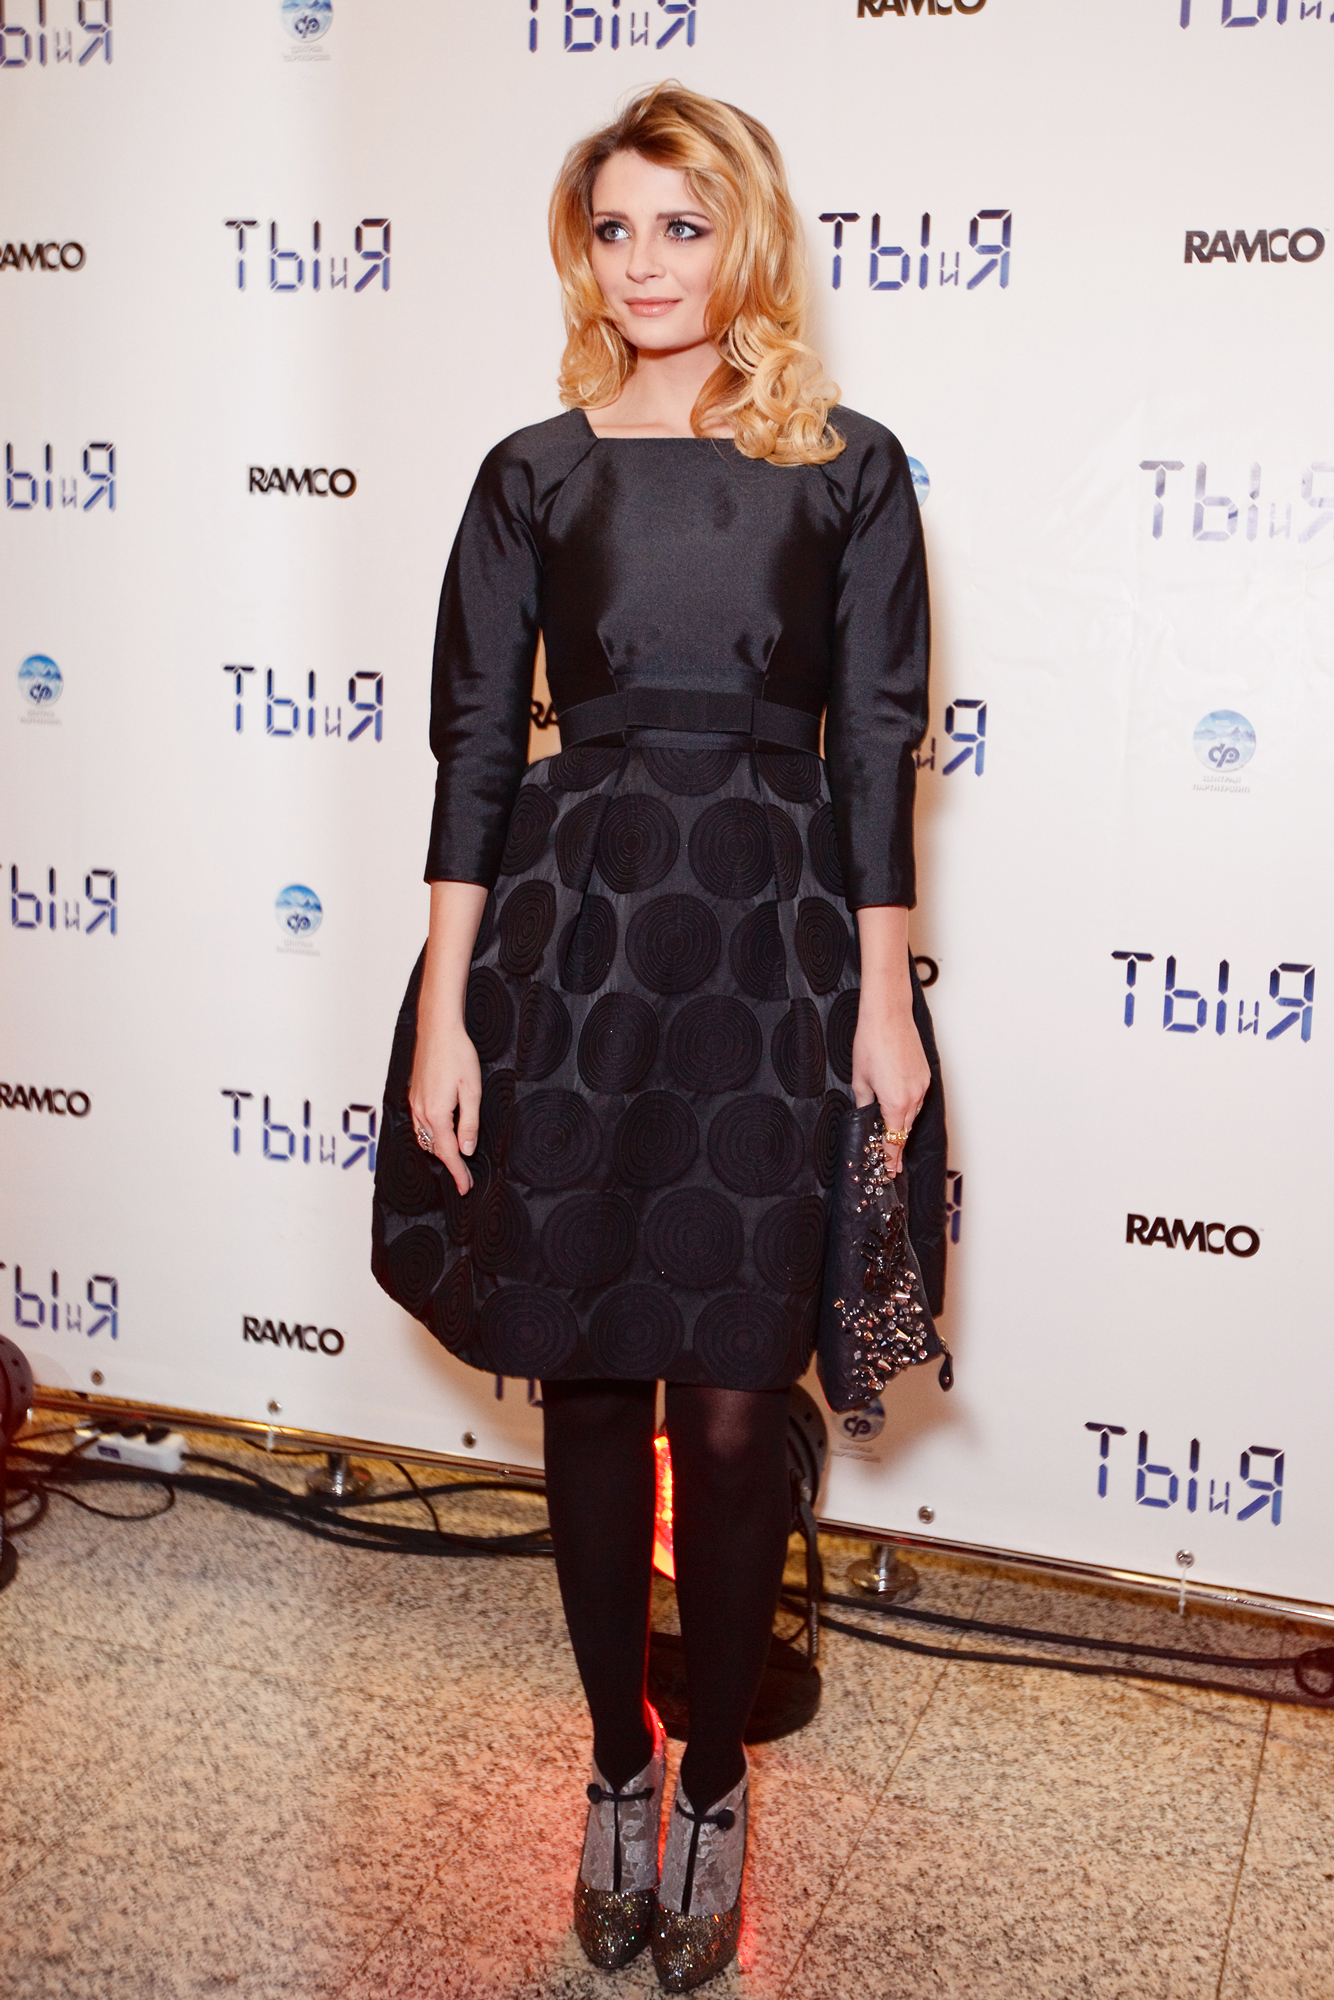 55506_Mischa_Barton_at_You_and_I_film_premiere_in_Moscow2_122_481lo.jpg